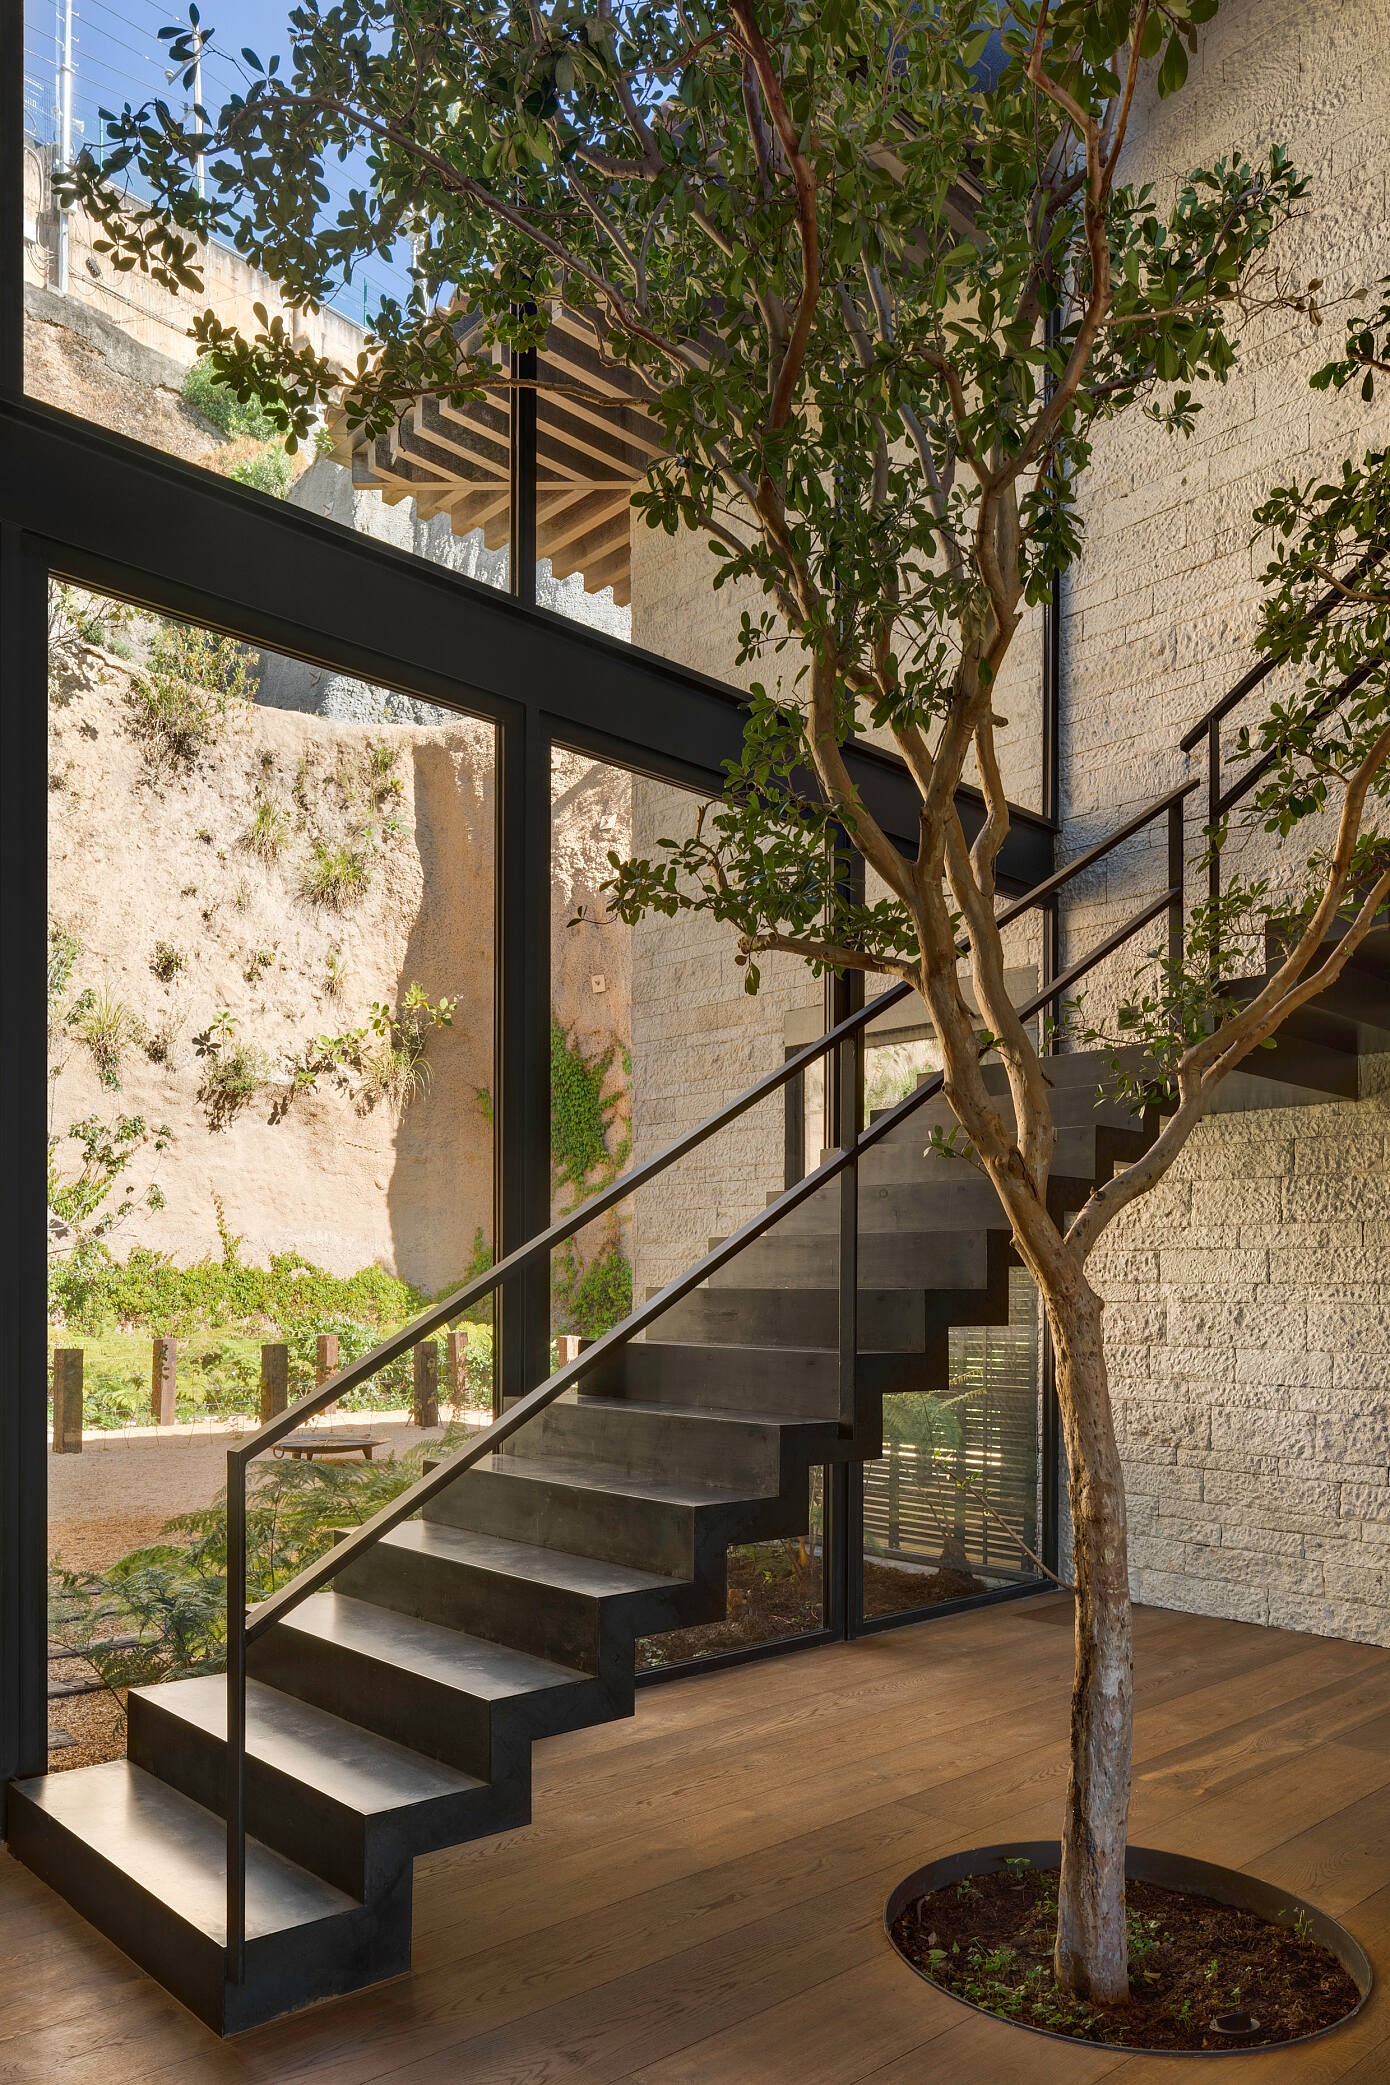 Ochre House by Chain + Siman